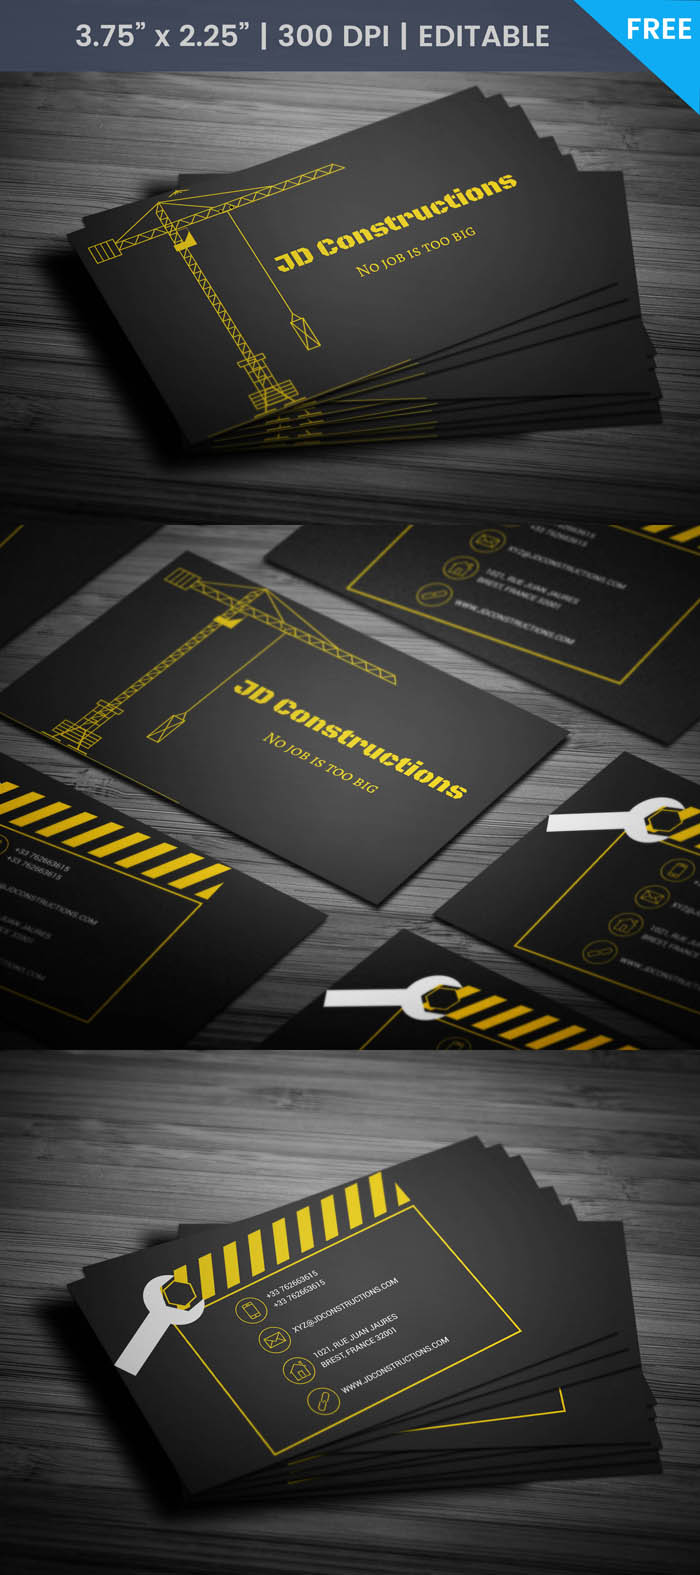 Free Building Construction Business Card Template